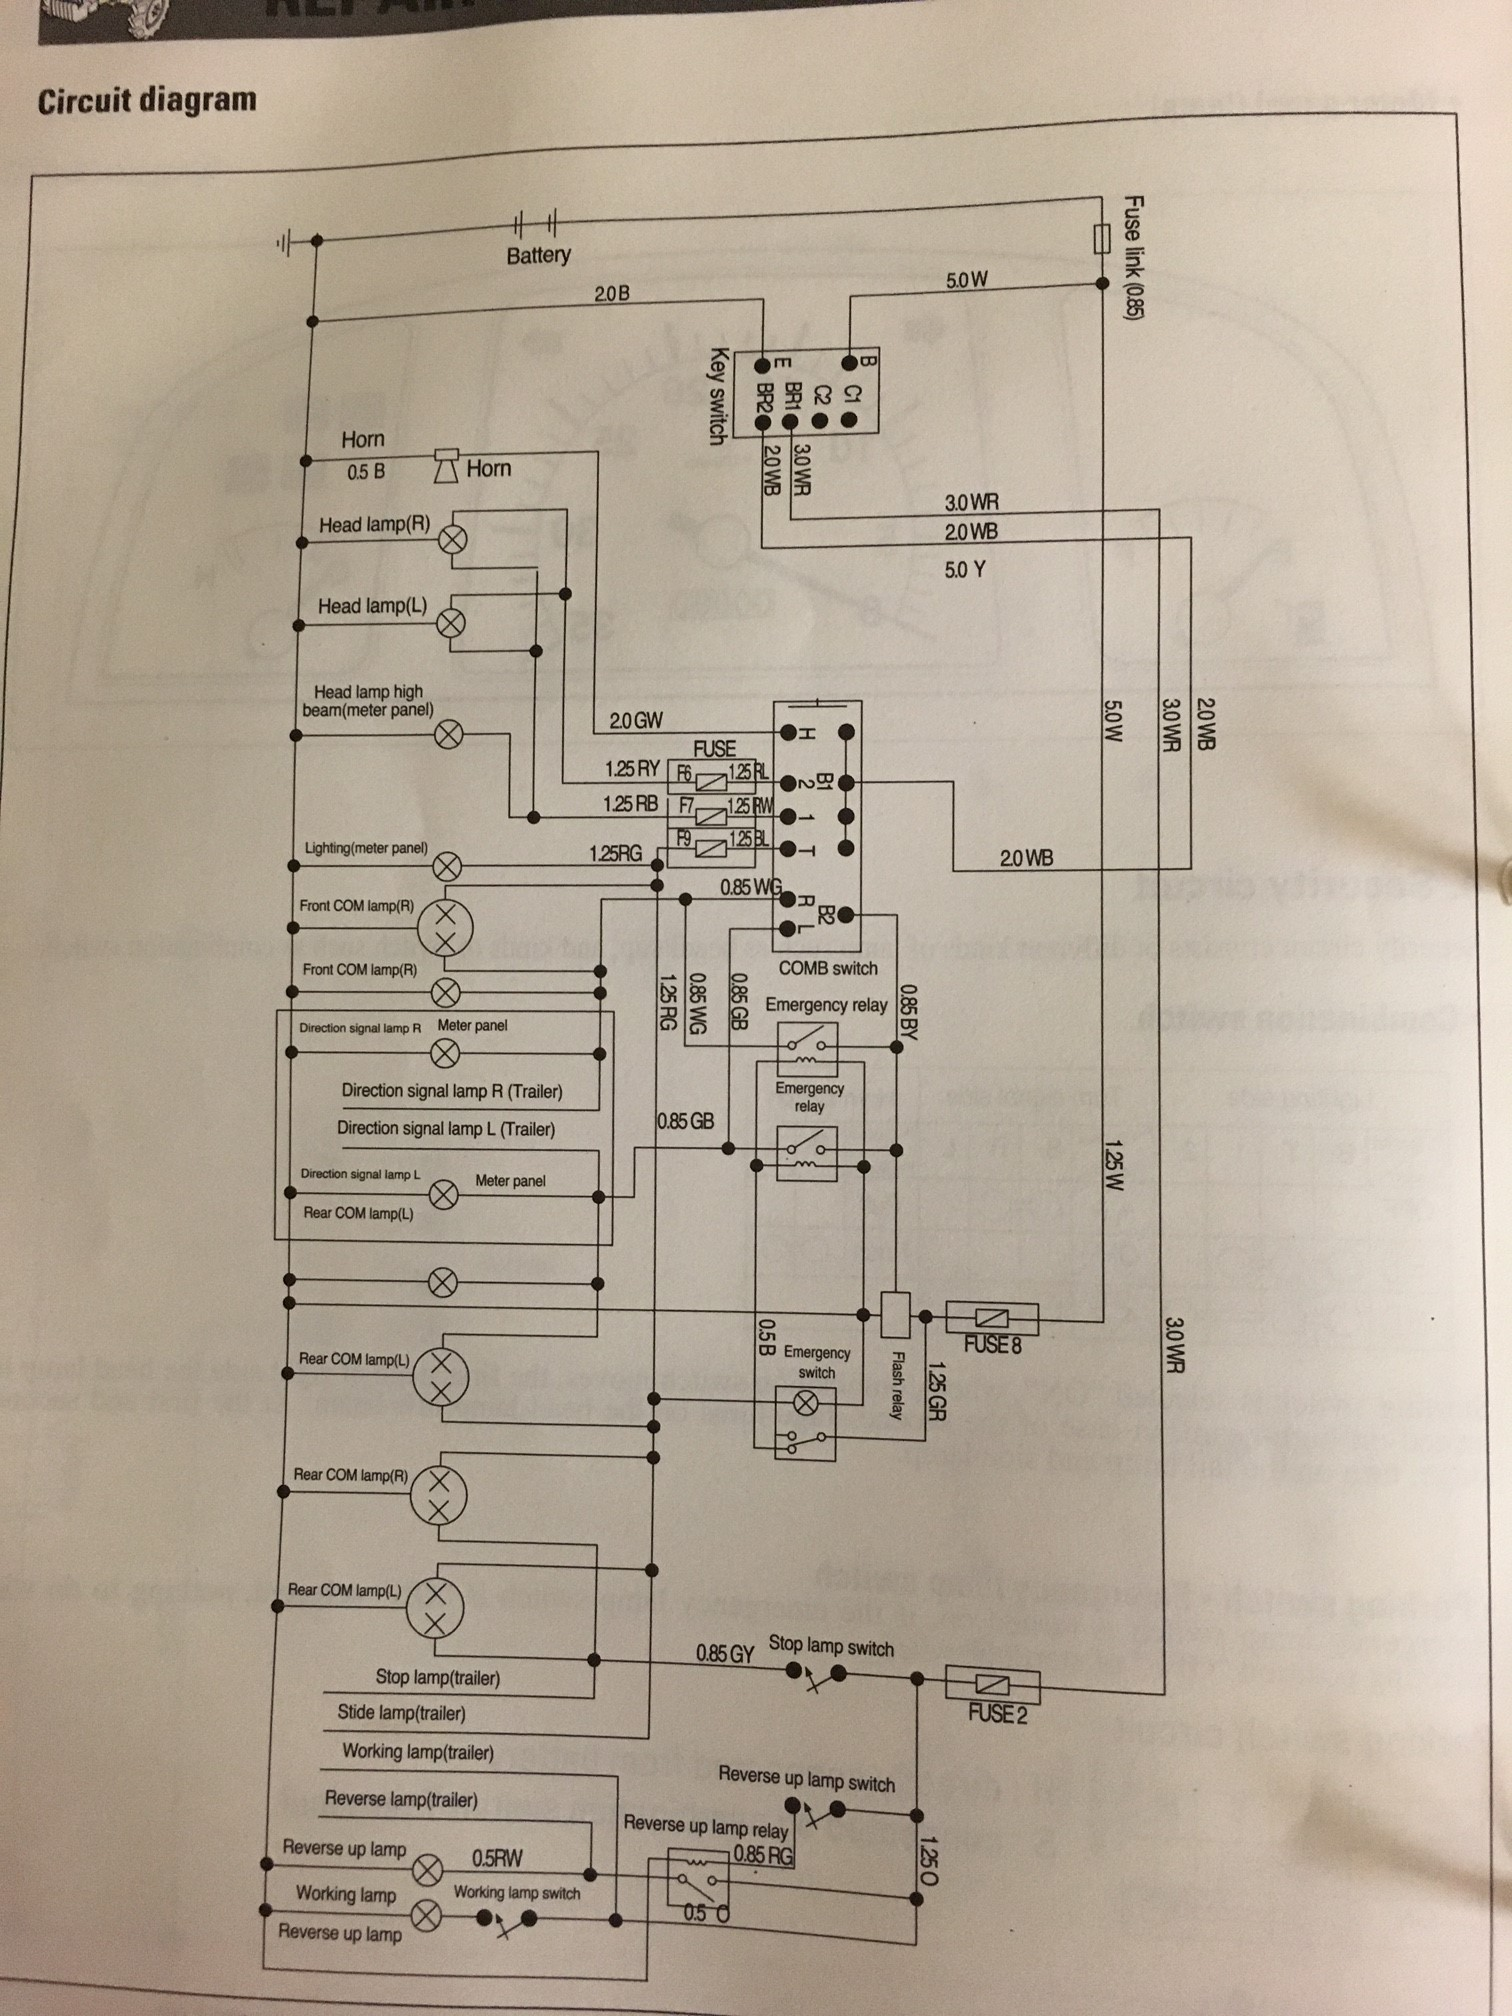 branson tractor wiring diagram | social-anywhere wiring diagram options -  social-anywhere.autoveicoli-elettrici.it  autoveicoli elettrici